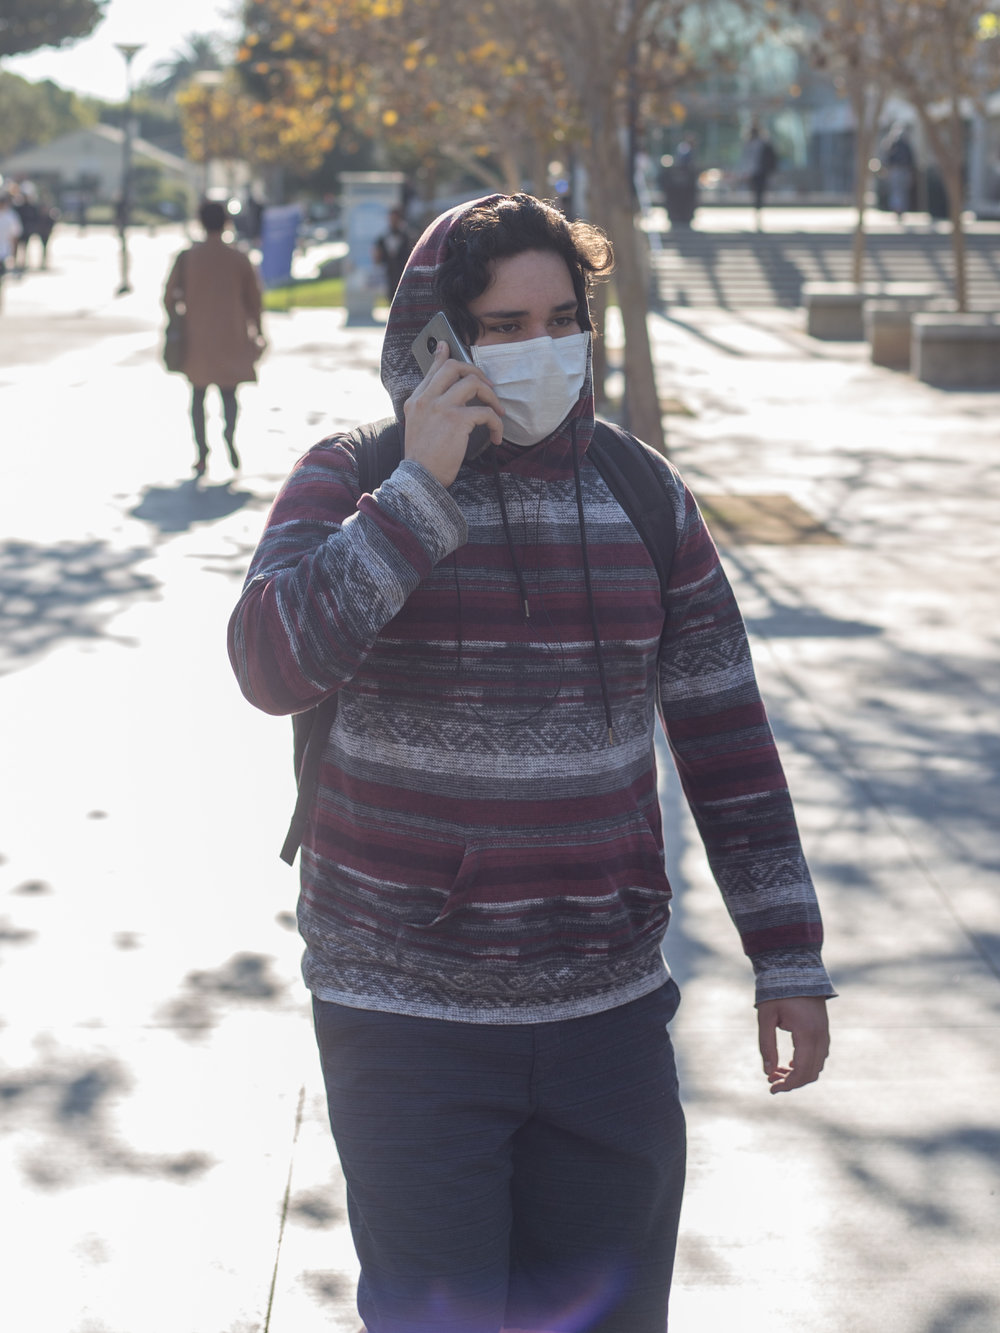 "SMC Student walks on campus with a mask over his mouth and nose due to the poor air quality as a result from the Skirball fire after an email was sent out at 8:49 am by SMC informing students that classes are canceled due to the close proximity to the Skirball fire on Wednesday, December 6th 2017 in Santa Monica, Calif. The email stated that the ""fire is affecting the air quality and the road conditions in and around SMC area"". (Photo by: Thane Fernandes)"